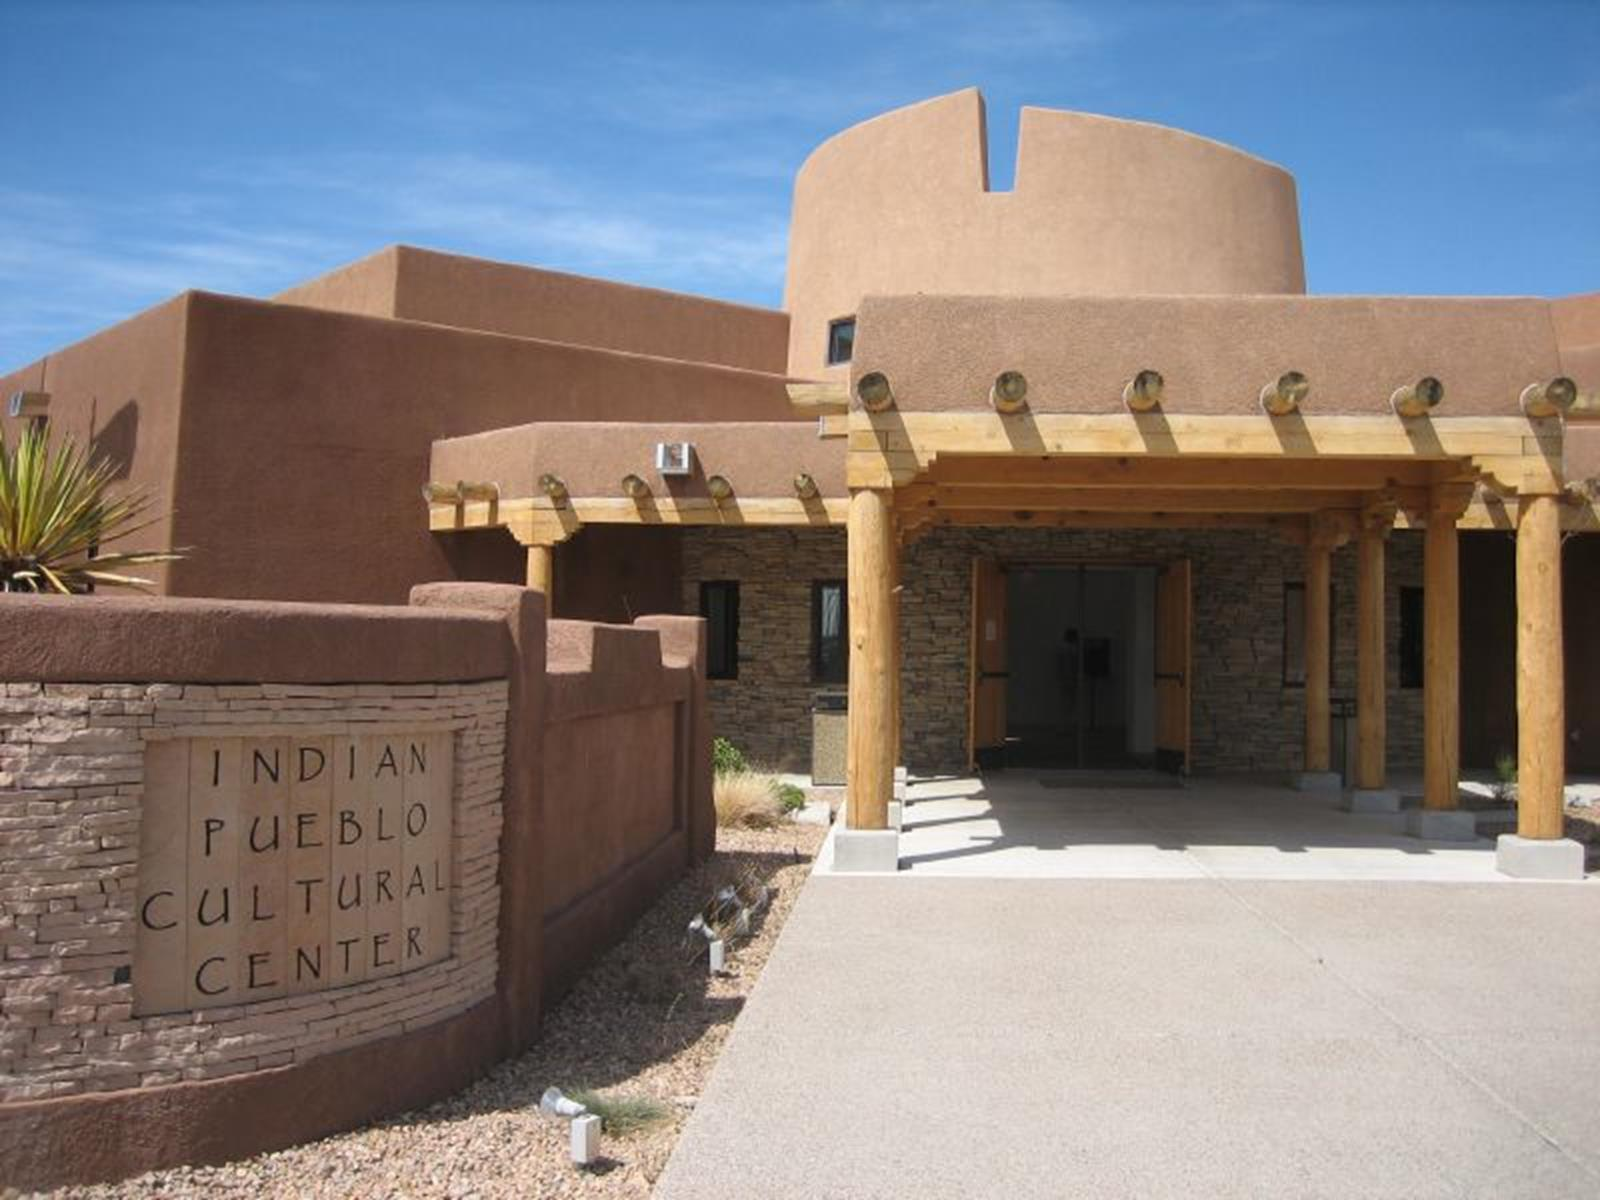 Indian Pueblo Cultural Center. Credits:Jonny Brownbill